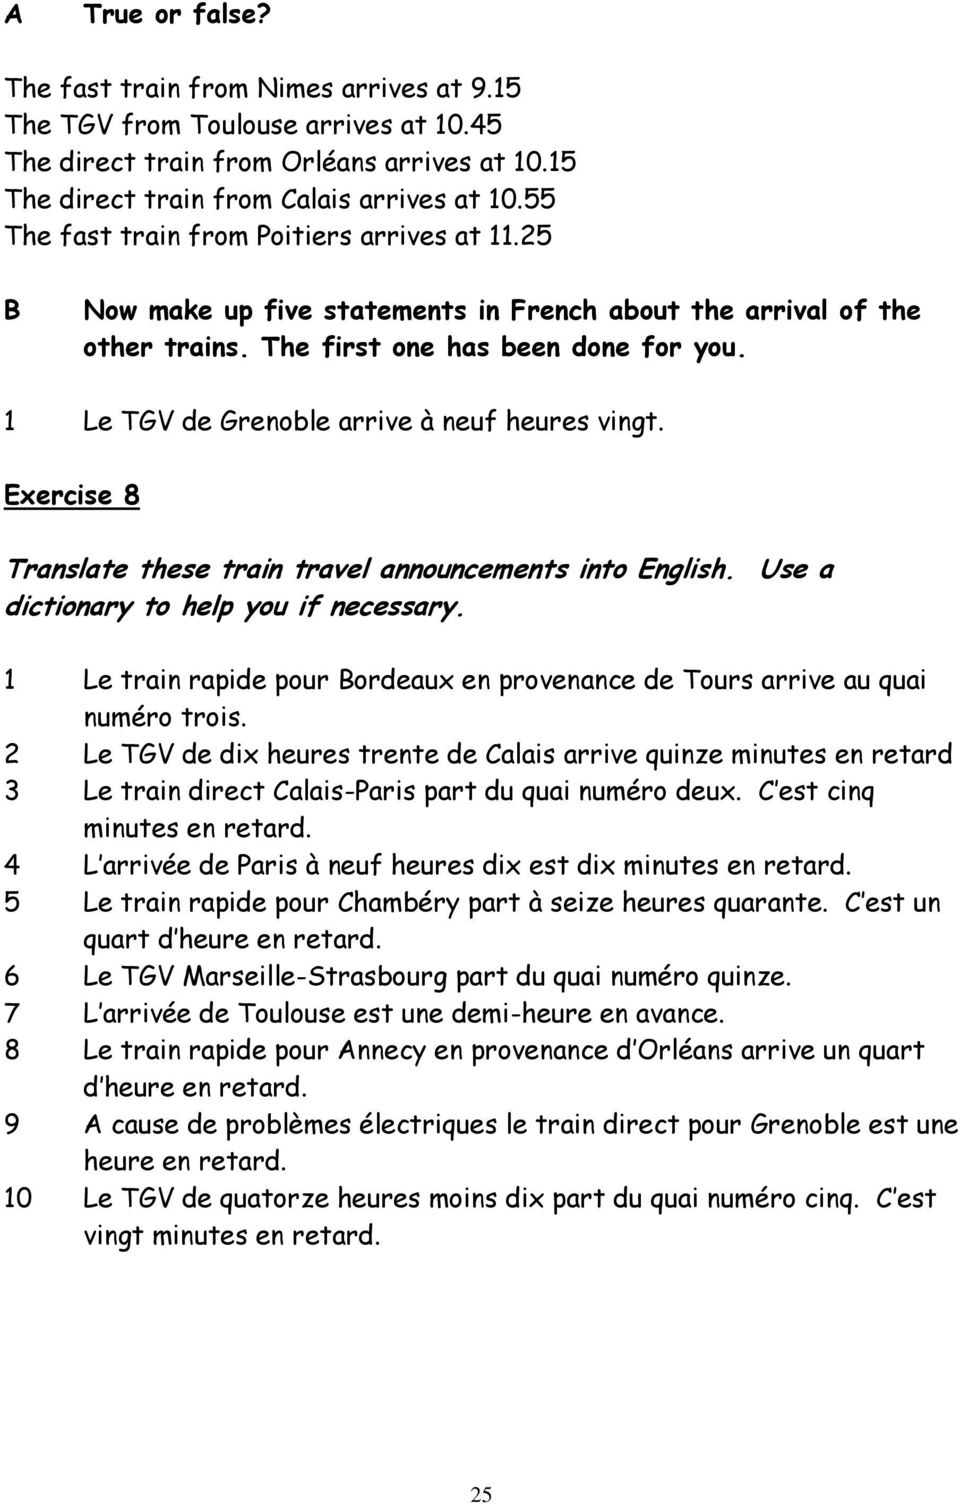 1 Le TGV de Grenoble arrive à neuf heures vingt. Exercise 8 Translate these train travel announcements into English. Use a dictionary to help you if necessary.